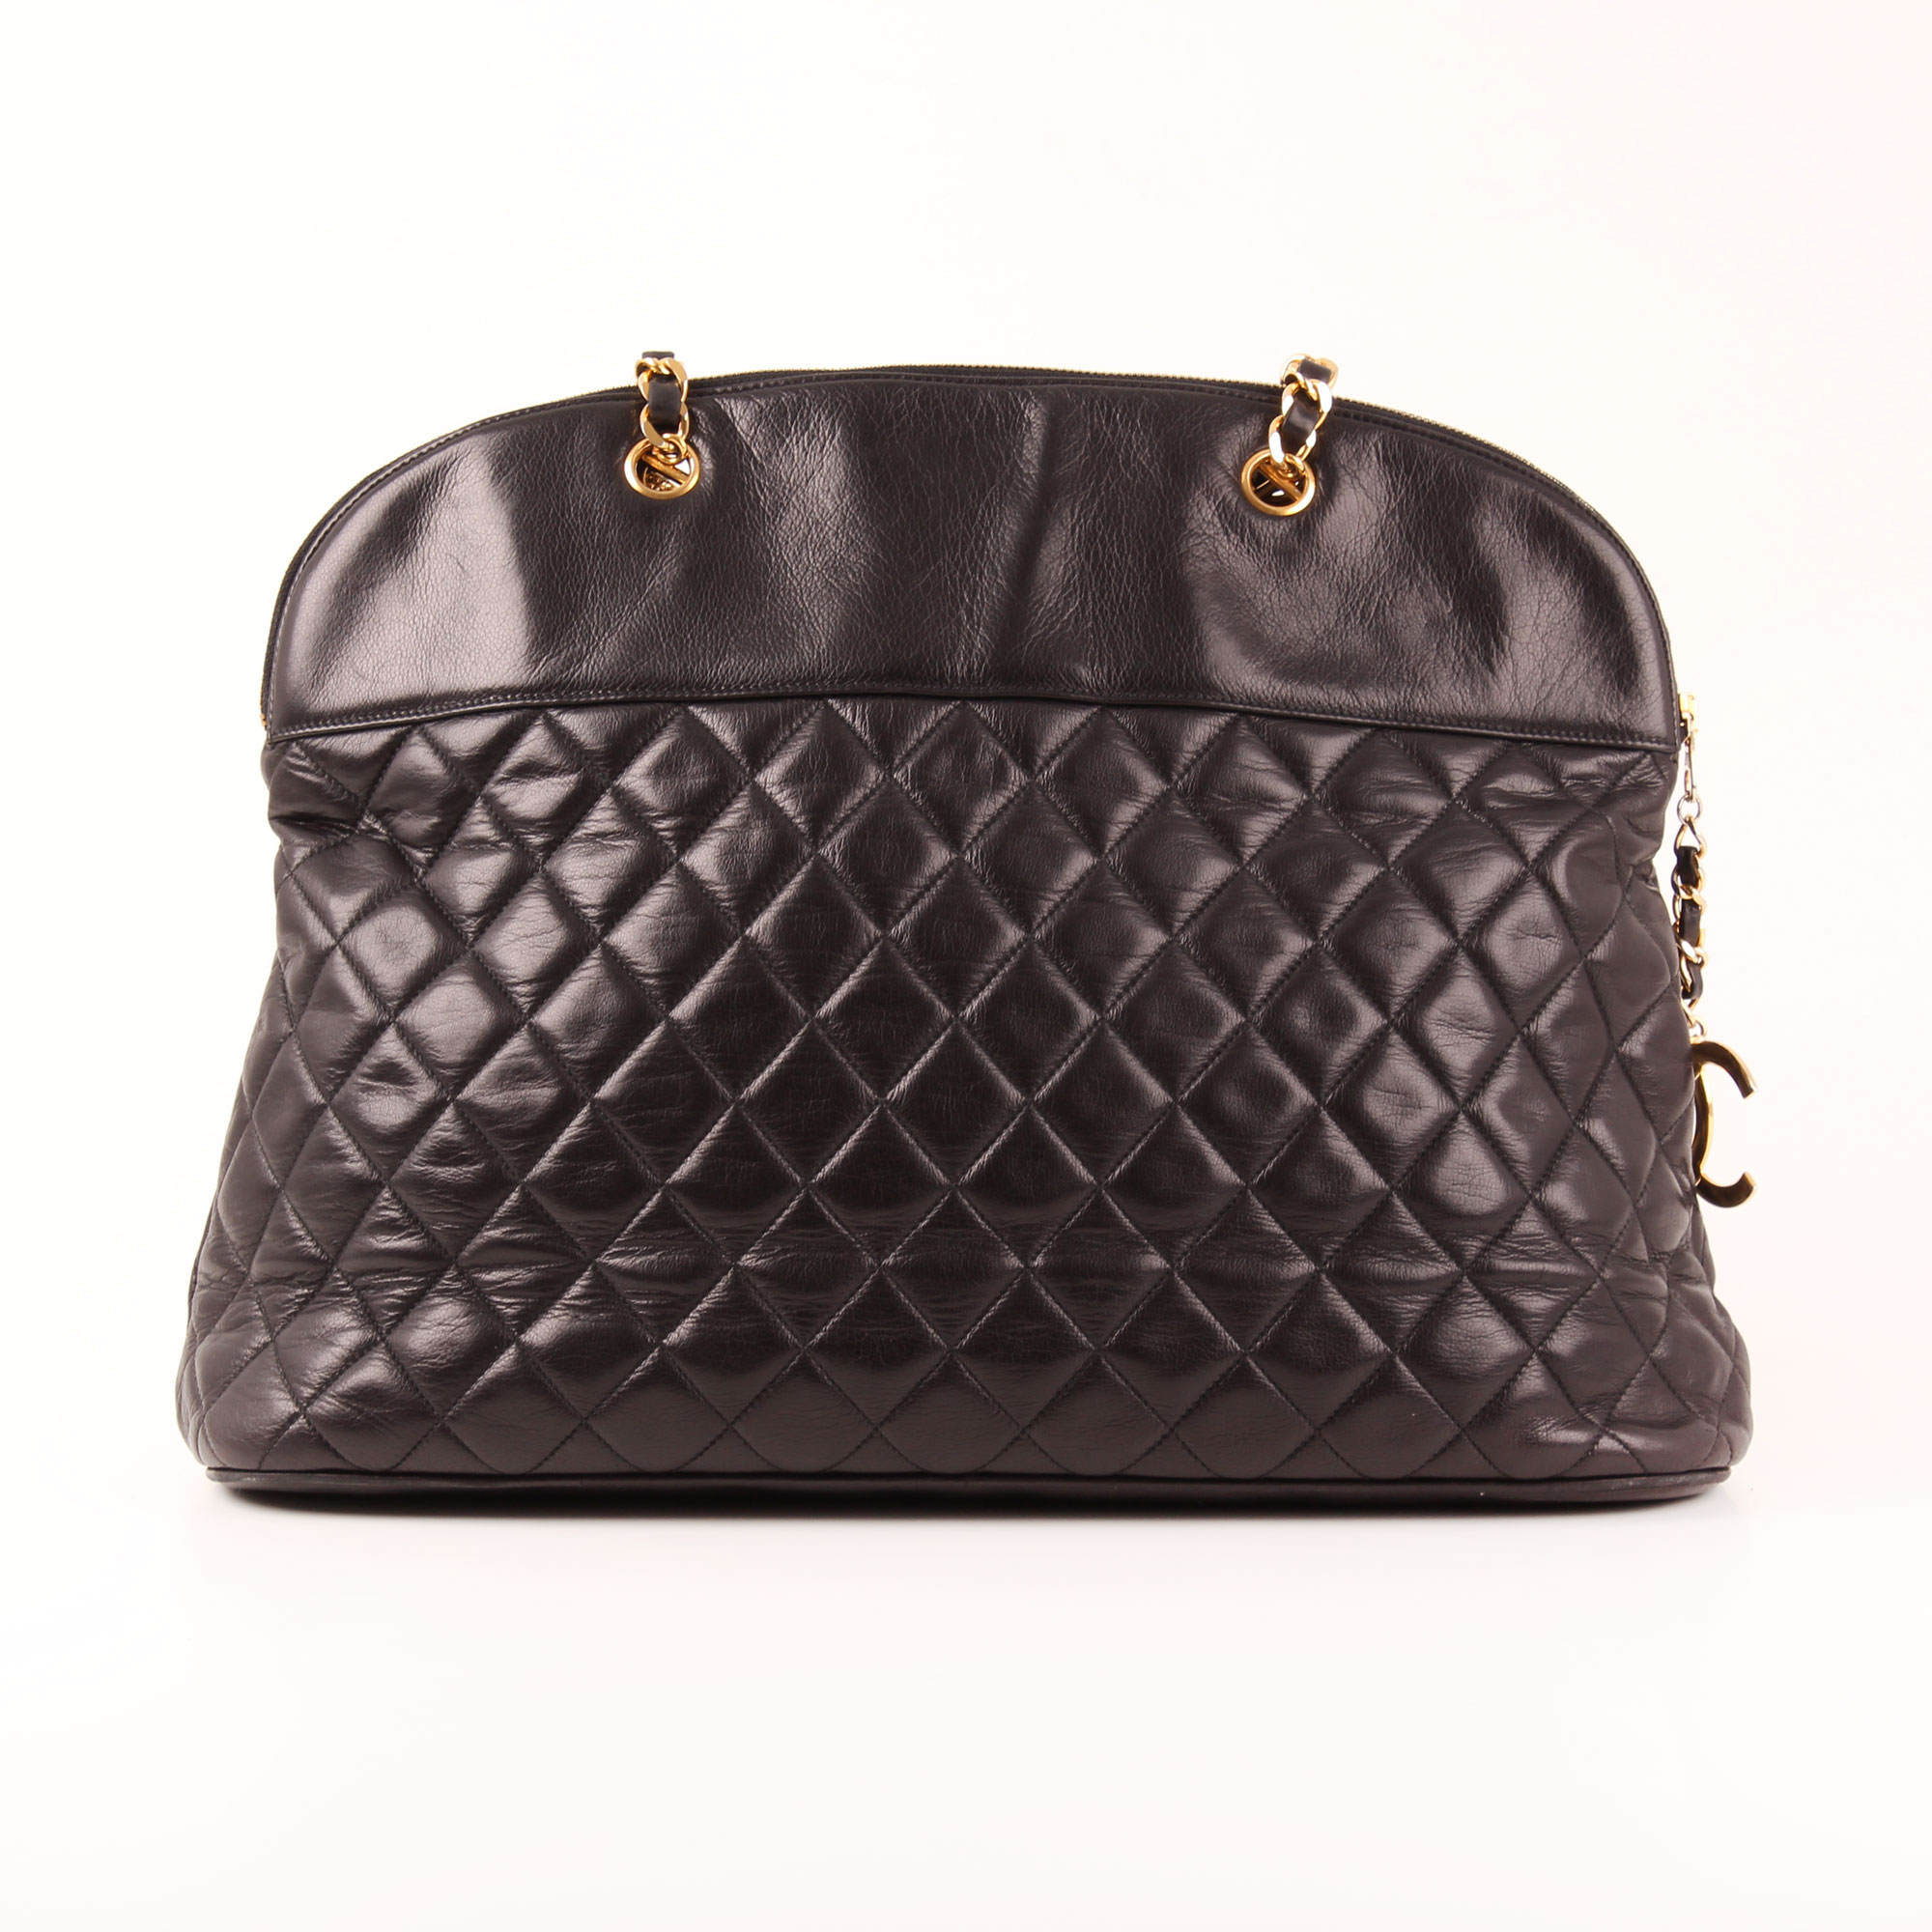 c00ae06c2089 Front image of chanel large classic shoulder bag black quilted lambskin  gold chain